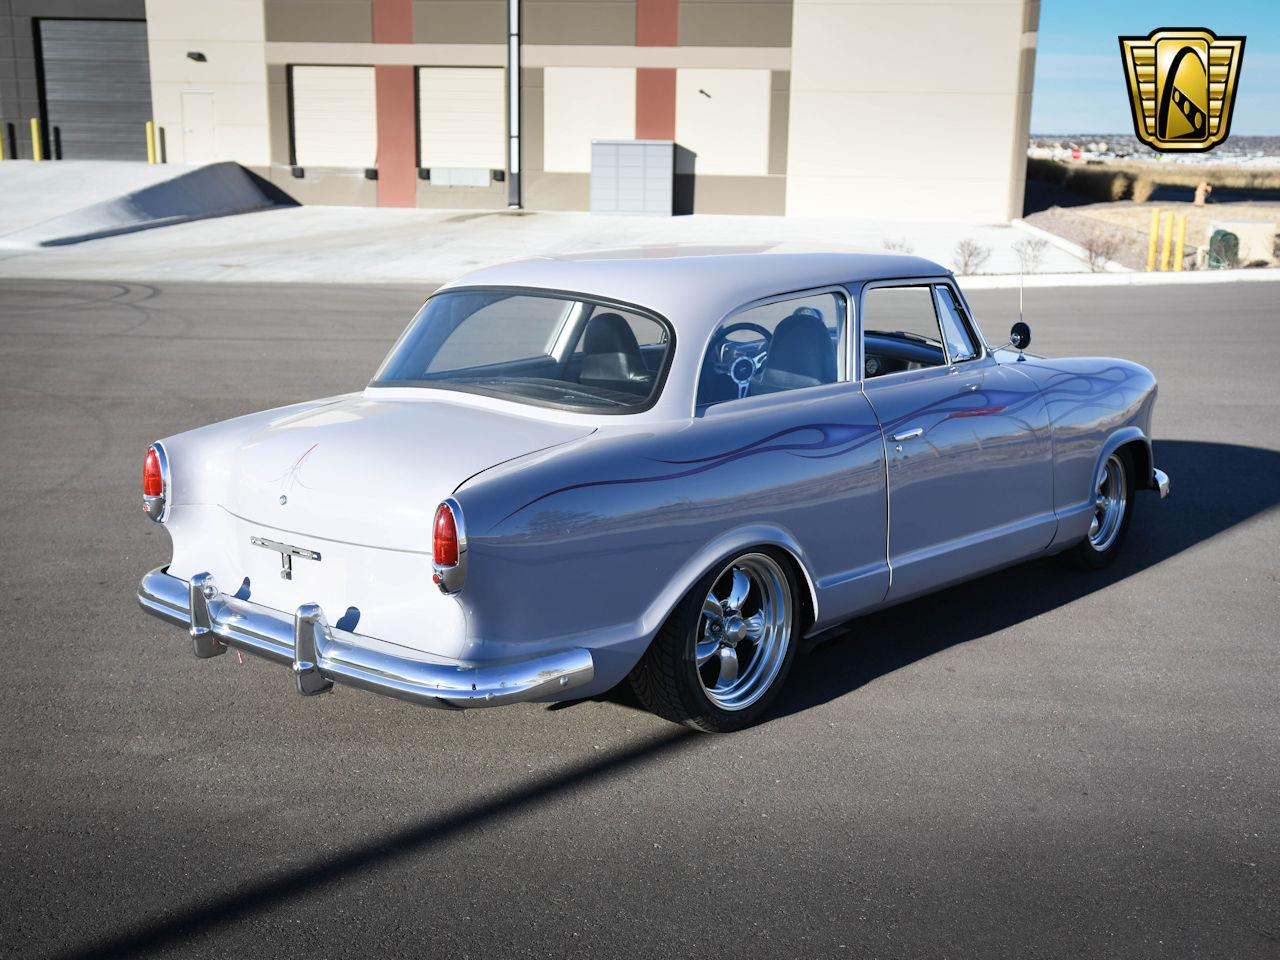 Large Picture of Classic 1958 Rambler American - $20,995.00 Offered by Gateway Classic Cars - Denver - MOAE